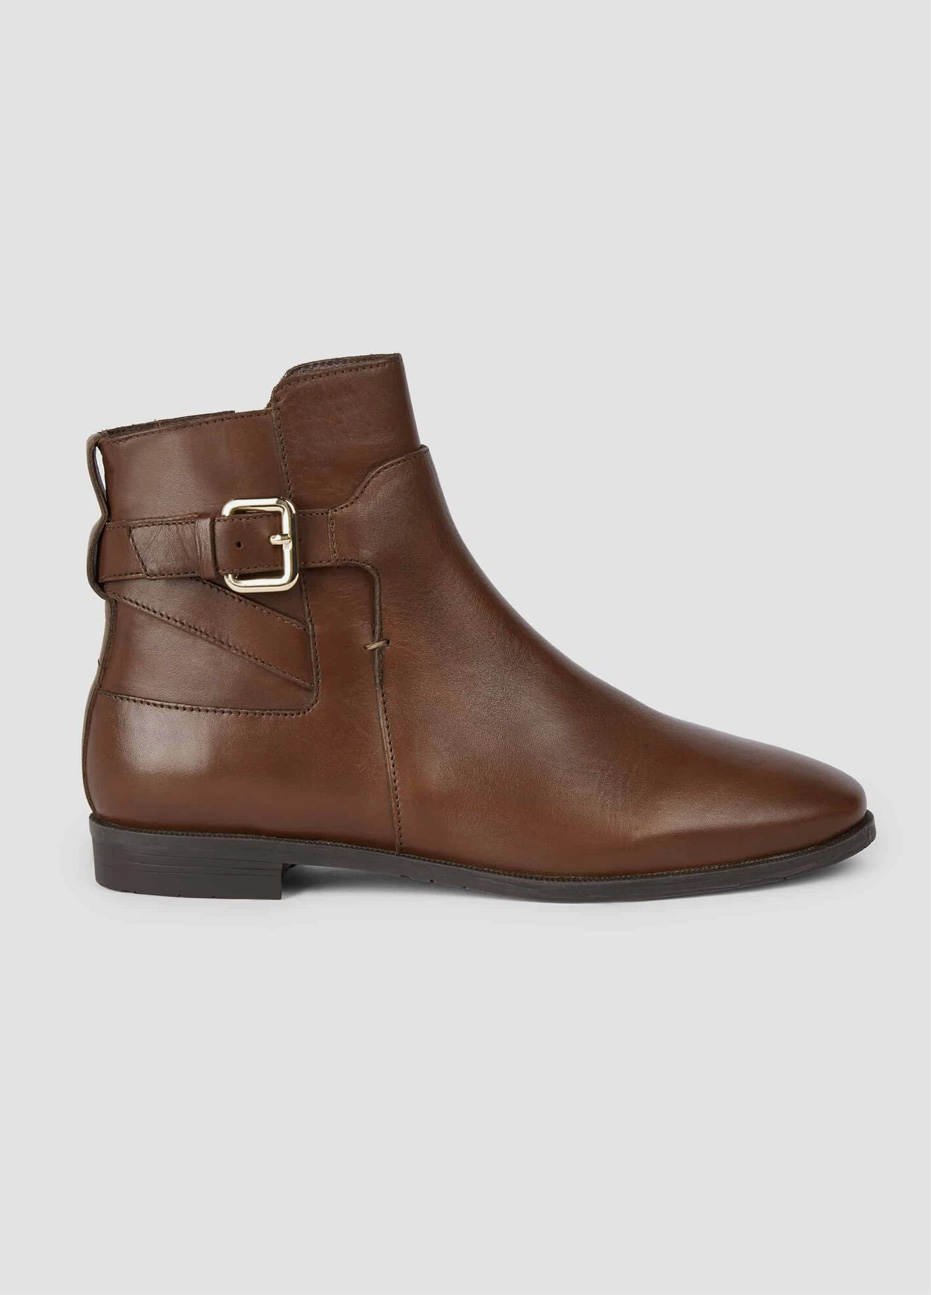 Hobbs women's brown leather boots.